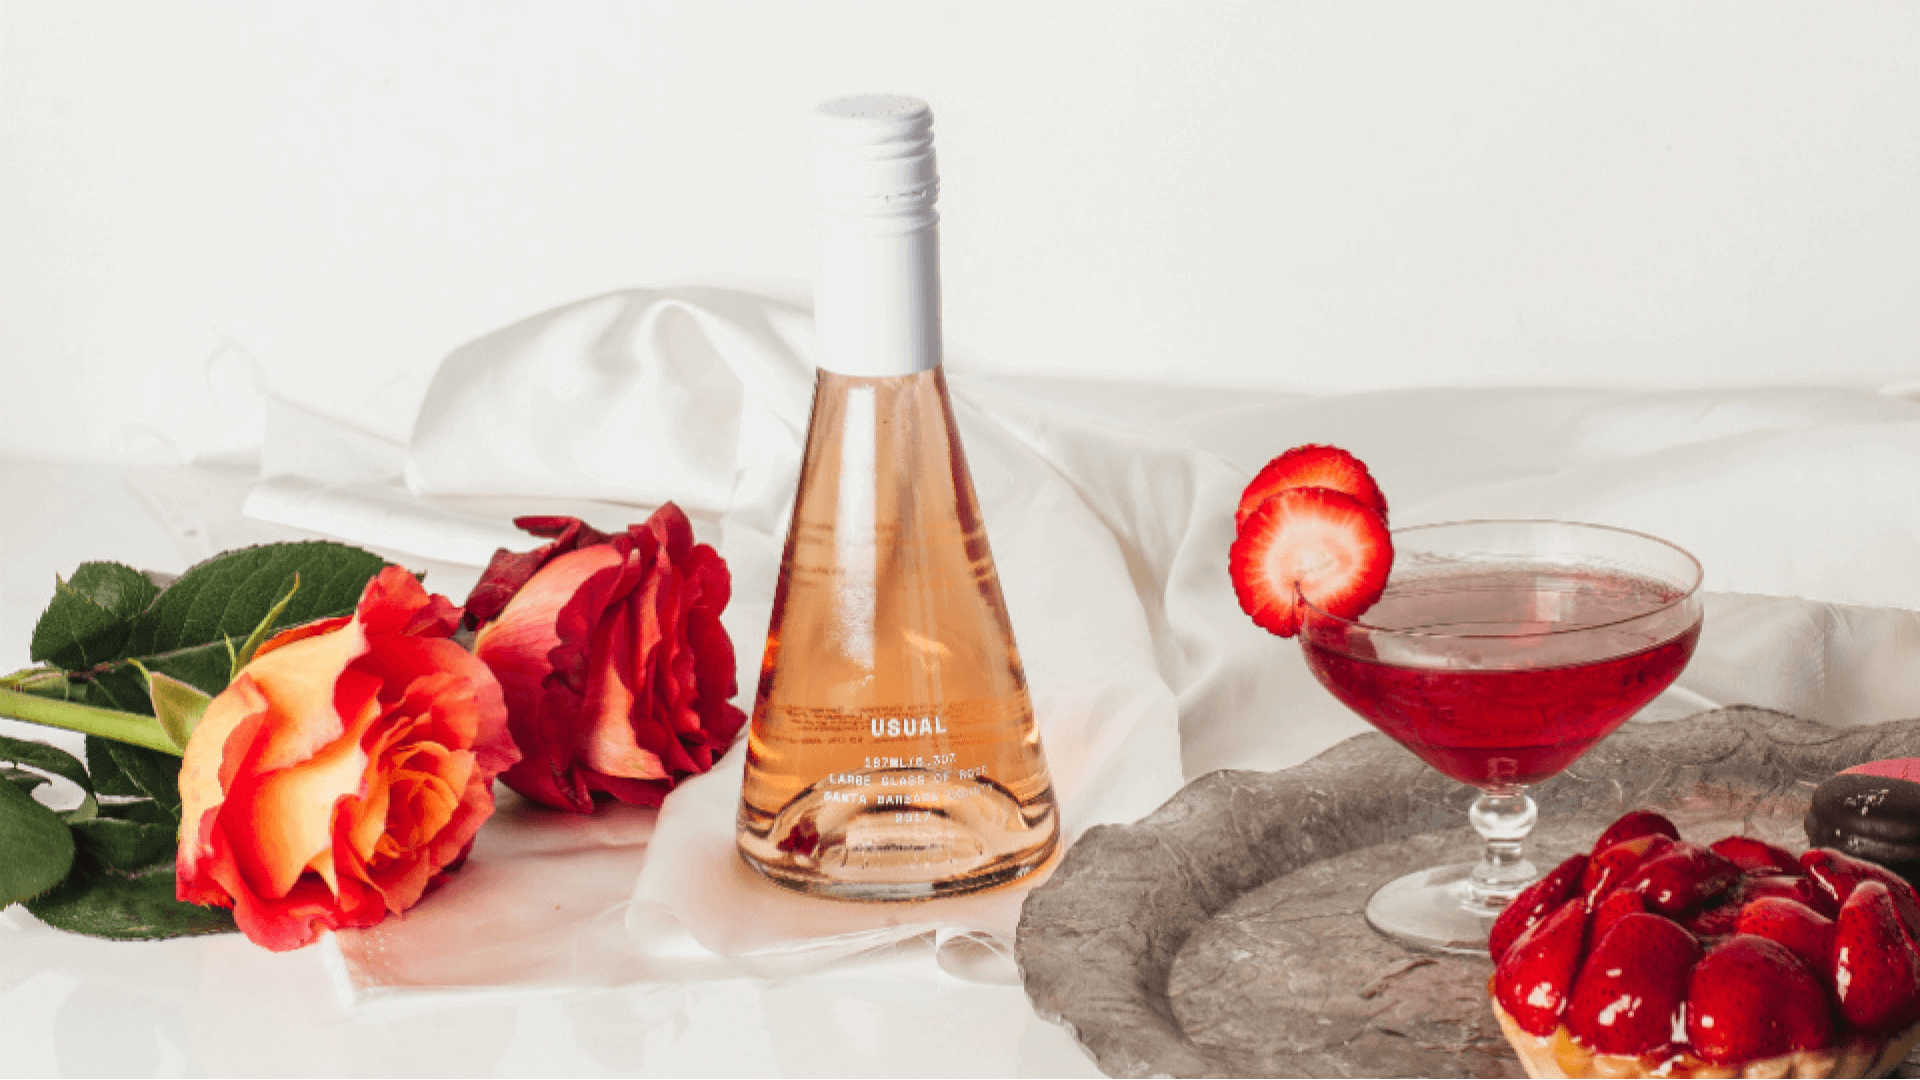 13 Wine eCommerce brands you should know